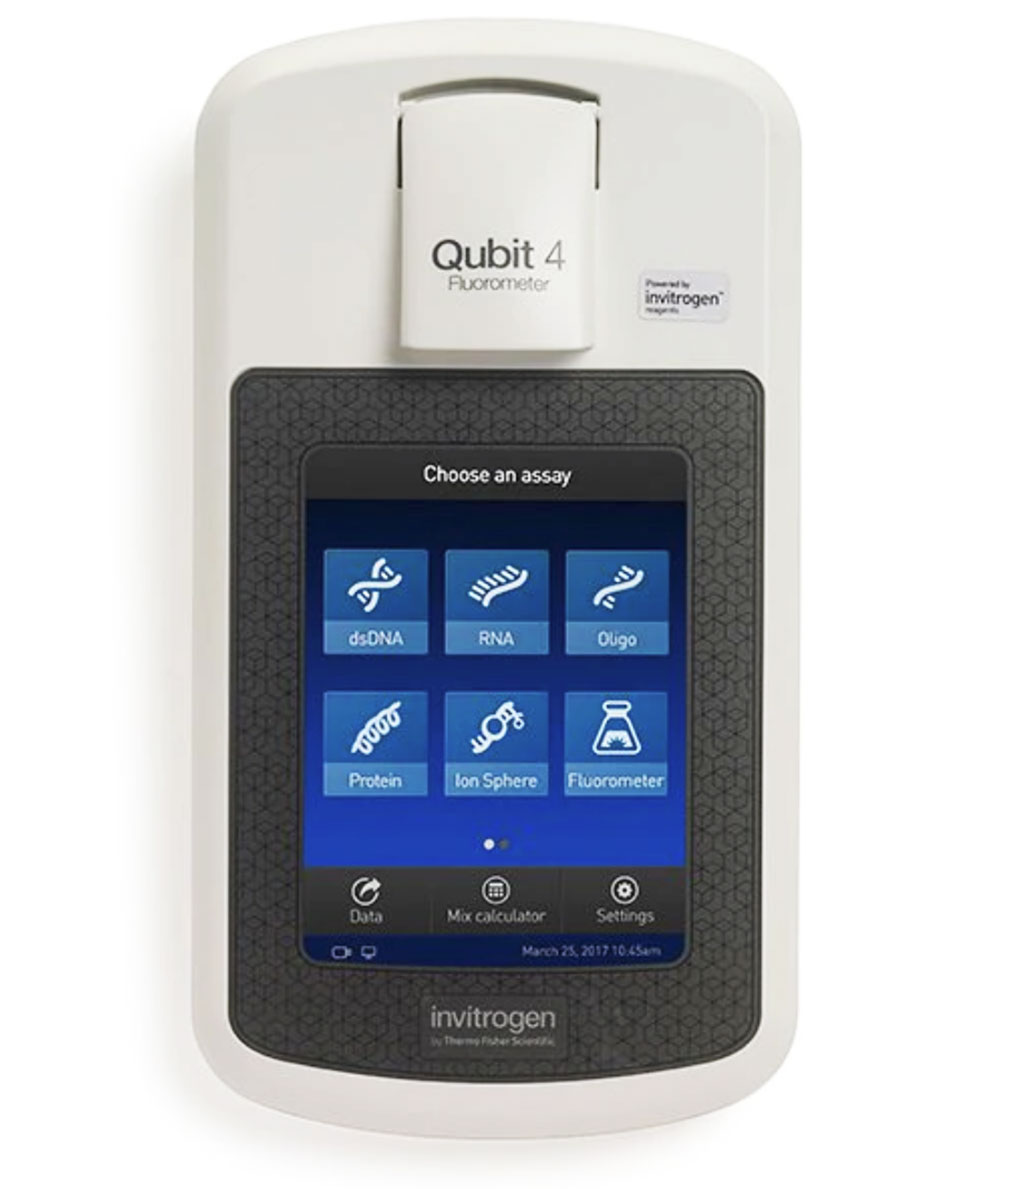 Image: The Invitrogen Qubit 4 Fluorometer is designed to accurately measure DNA, RNA, and protein quantity (Photo courtesy of Thermo Fisher Scientific)